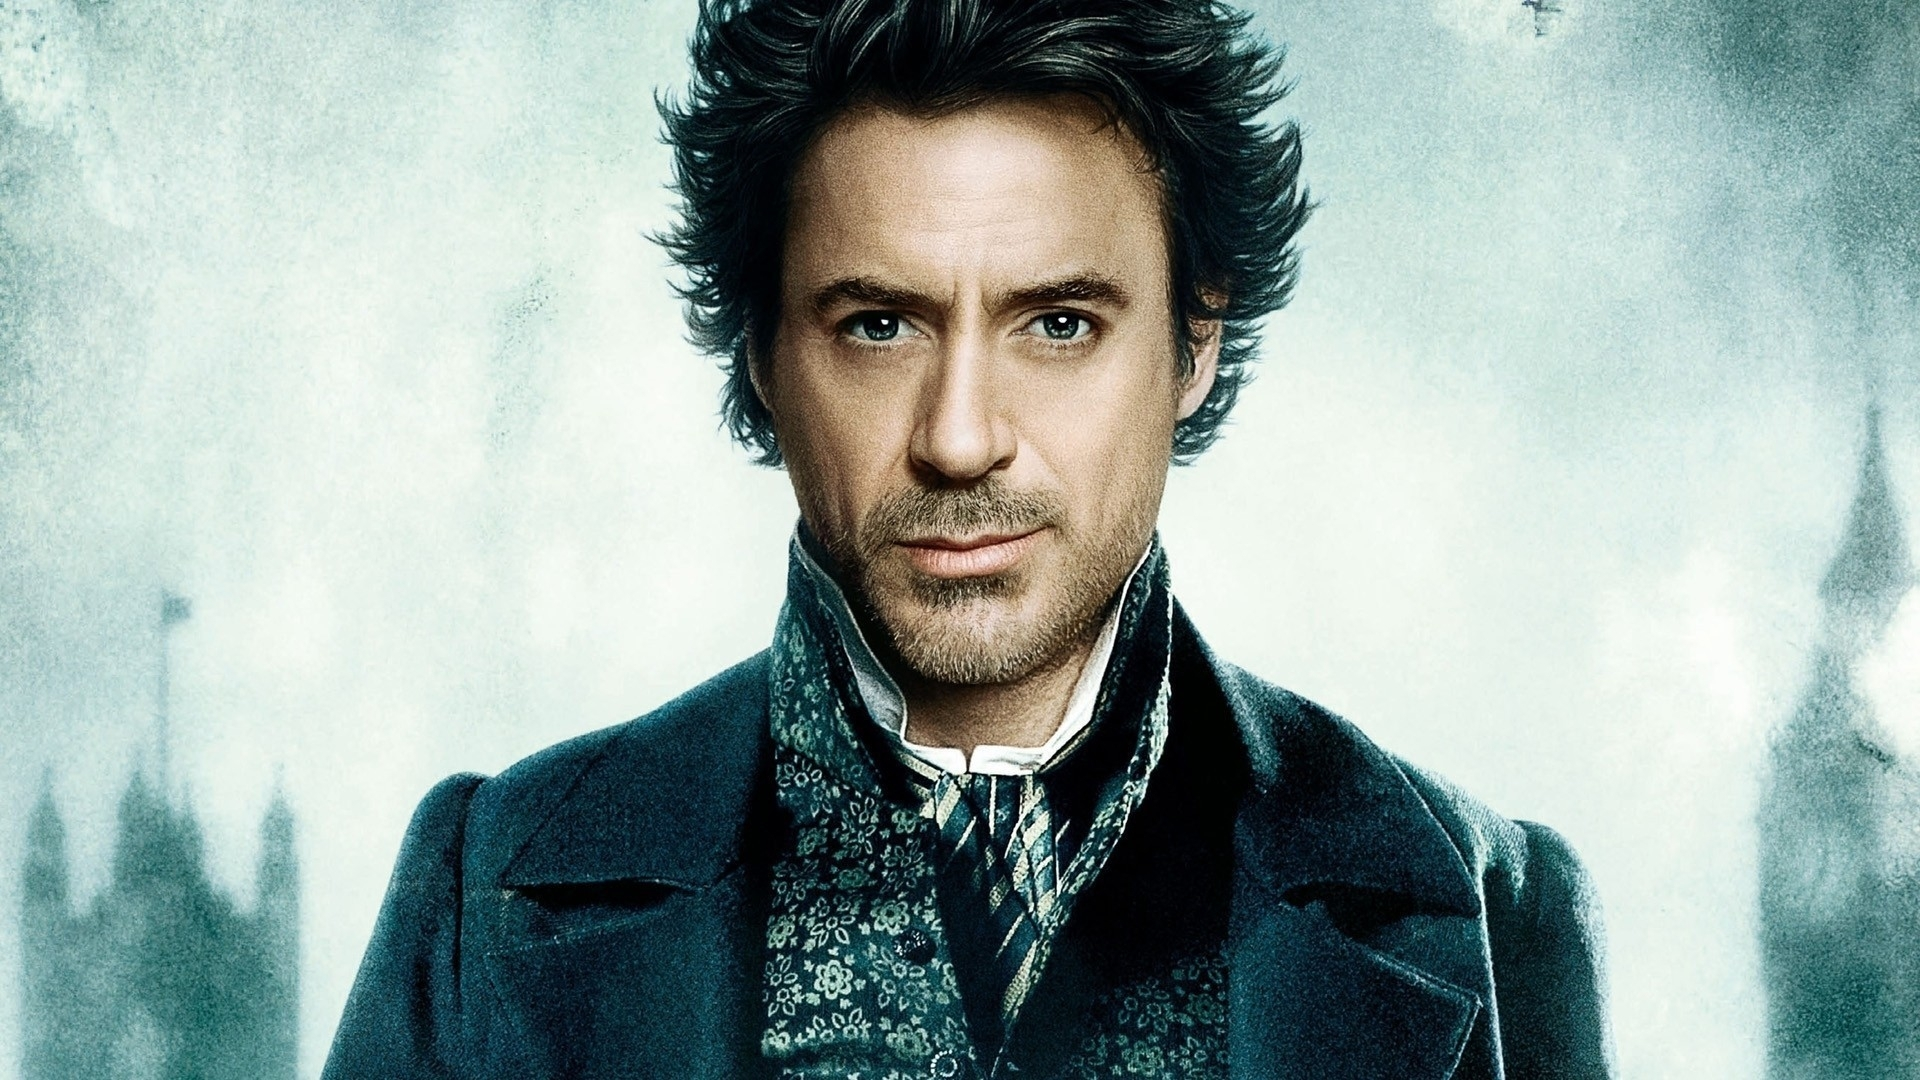 sherlock holmes 3' will shoot this year, says robert downey jr